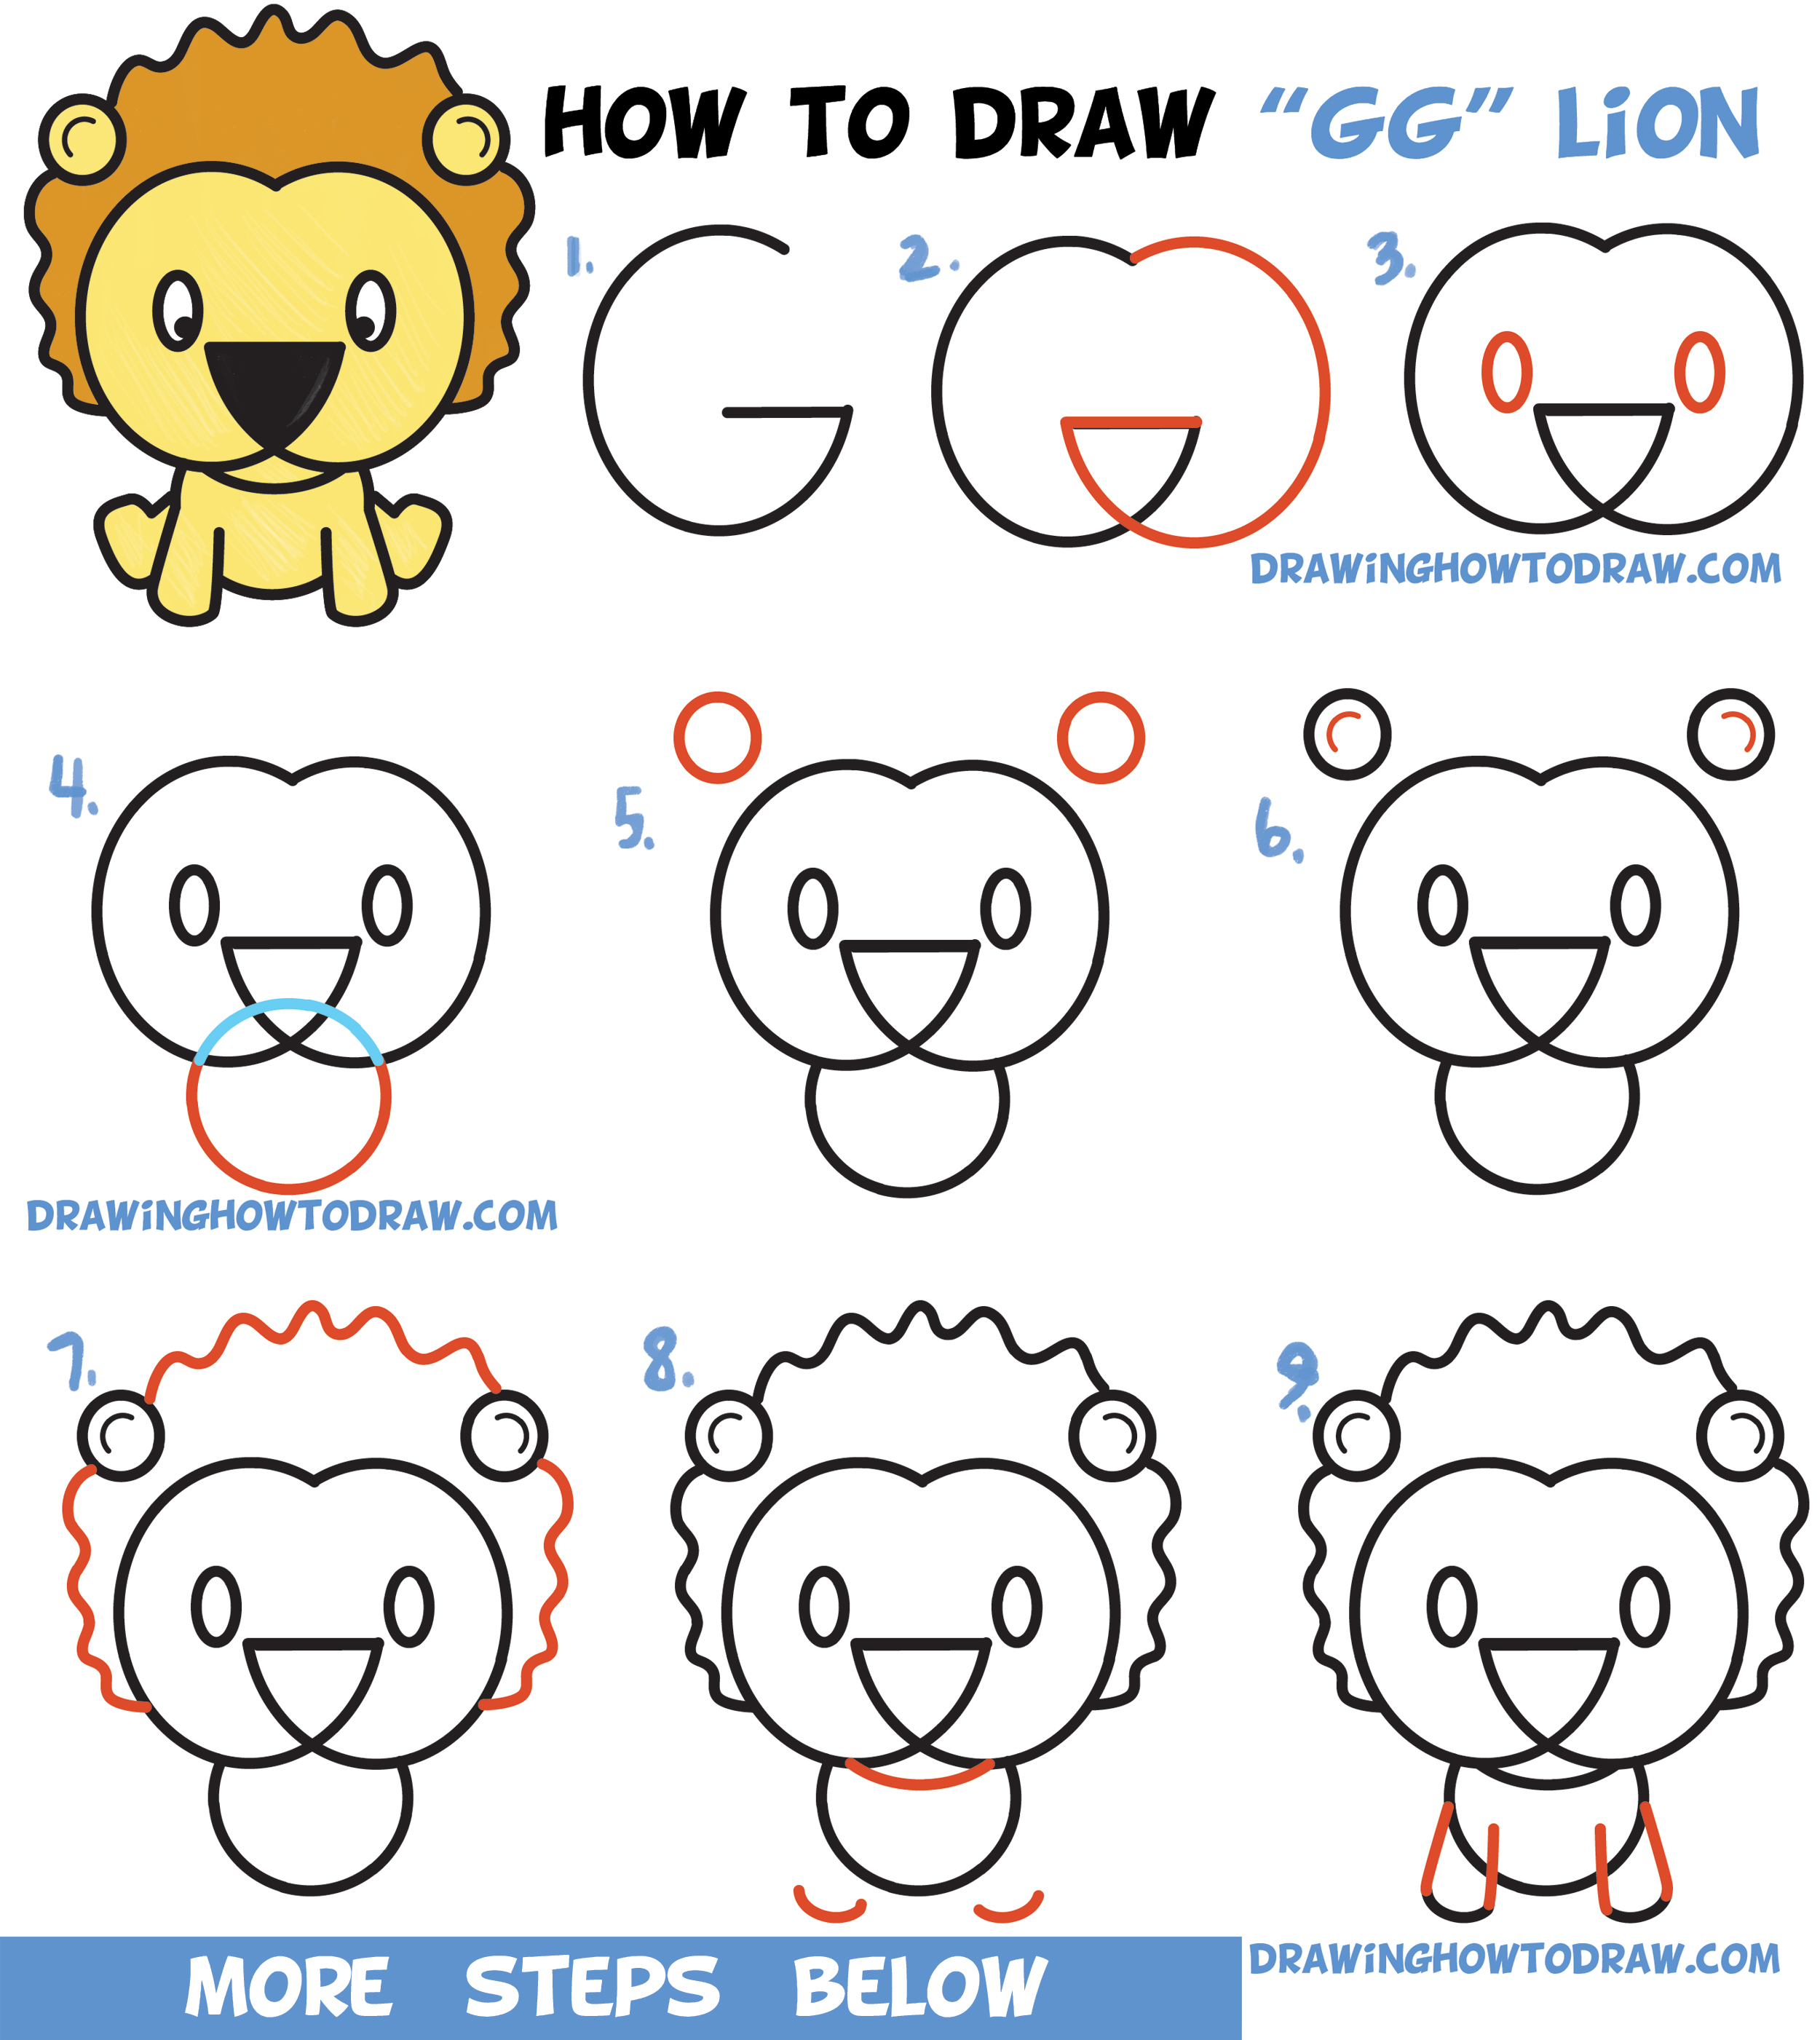 Learn How To Draw A Cute Cartoon Lion From Letters G G Easy Step By Step Drawing Tutorial For Kids How To Draw Step By Step Drawing Tutorials